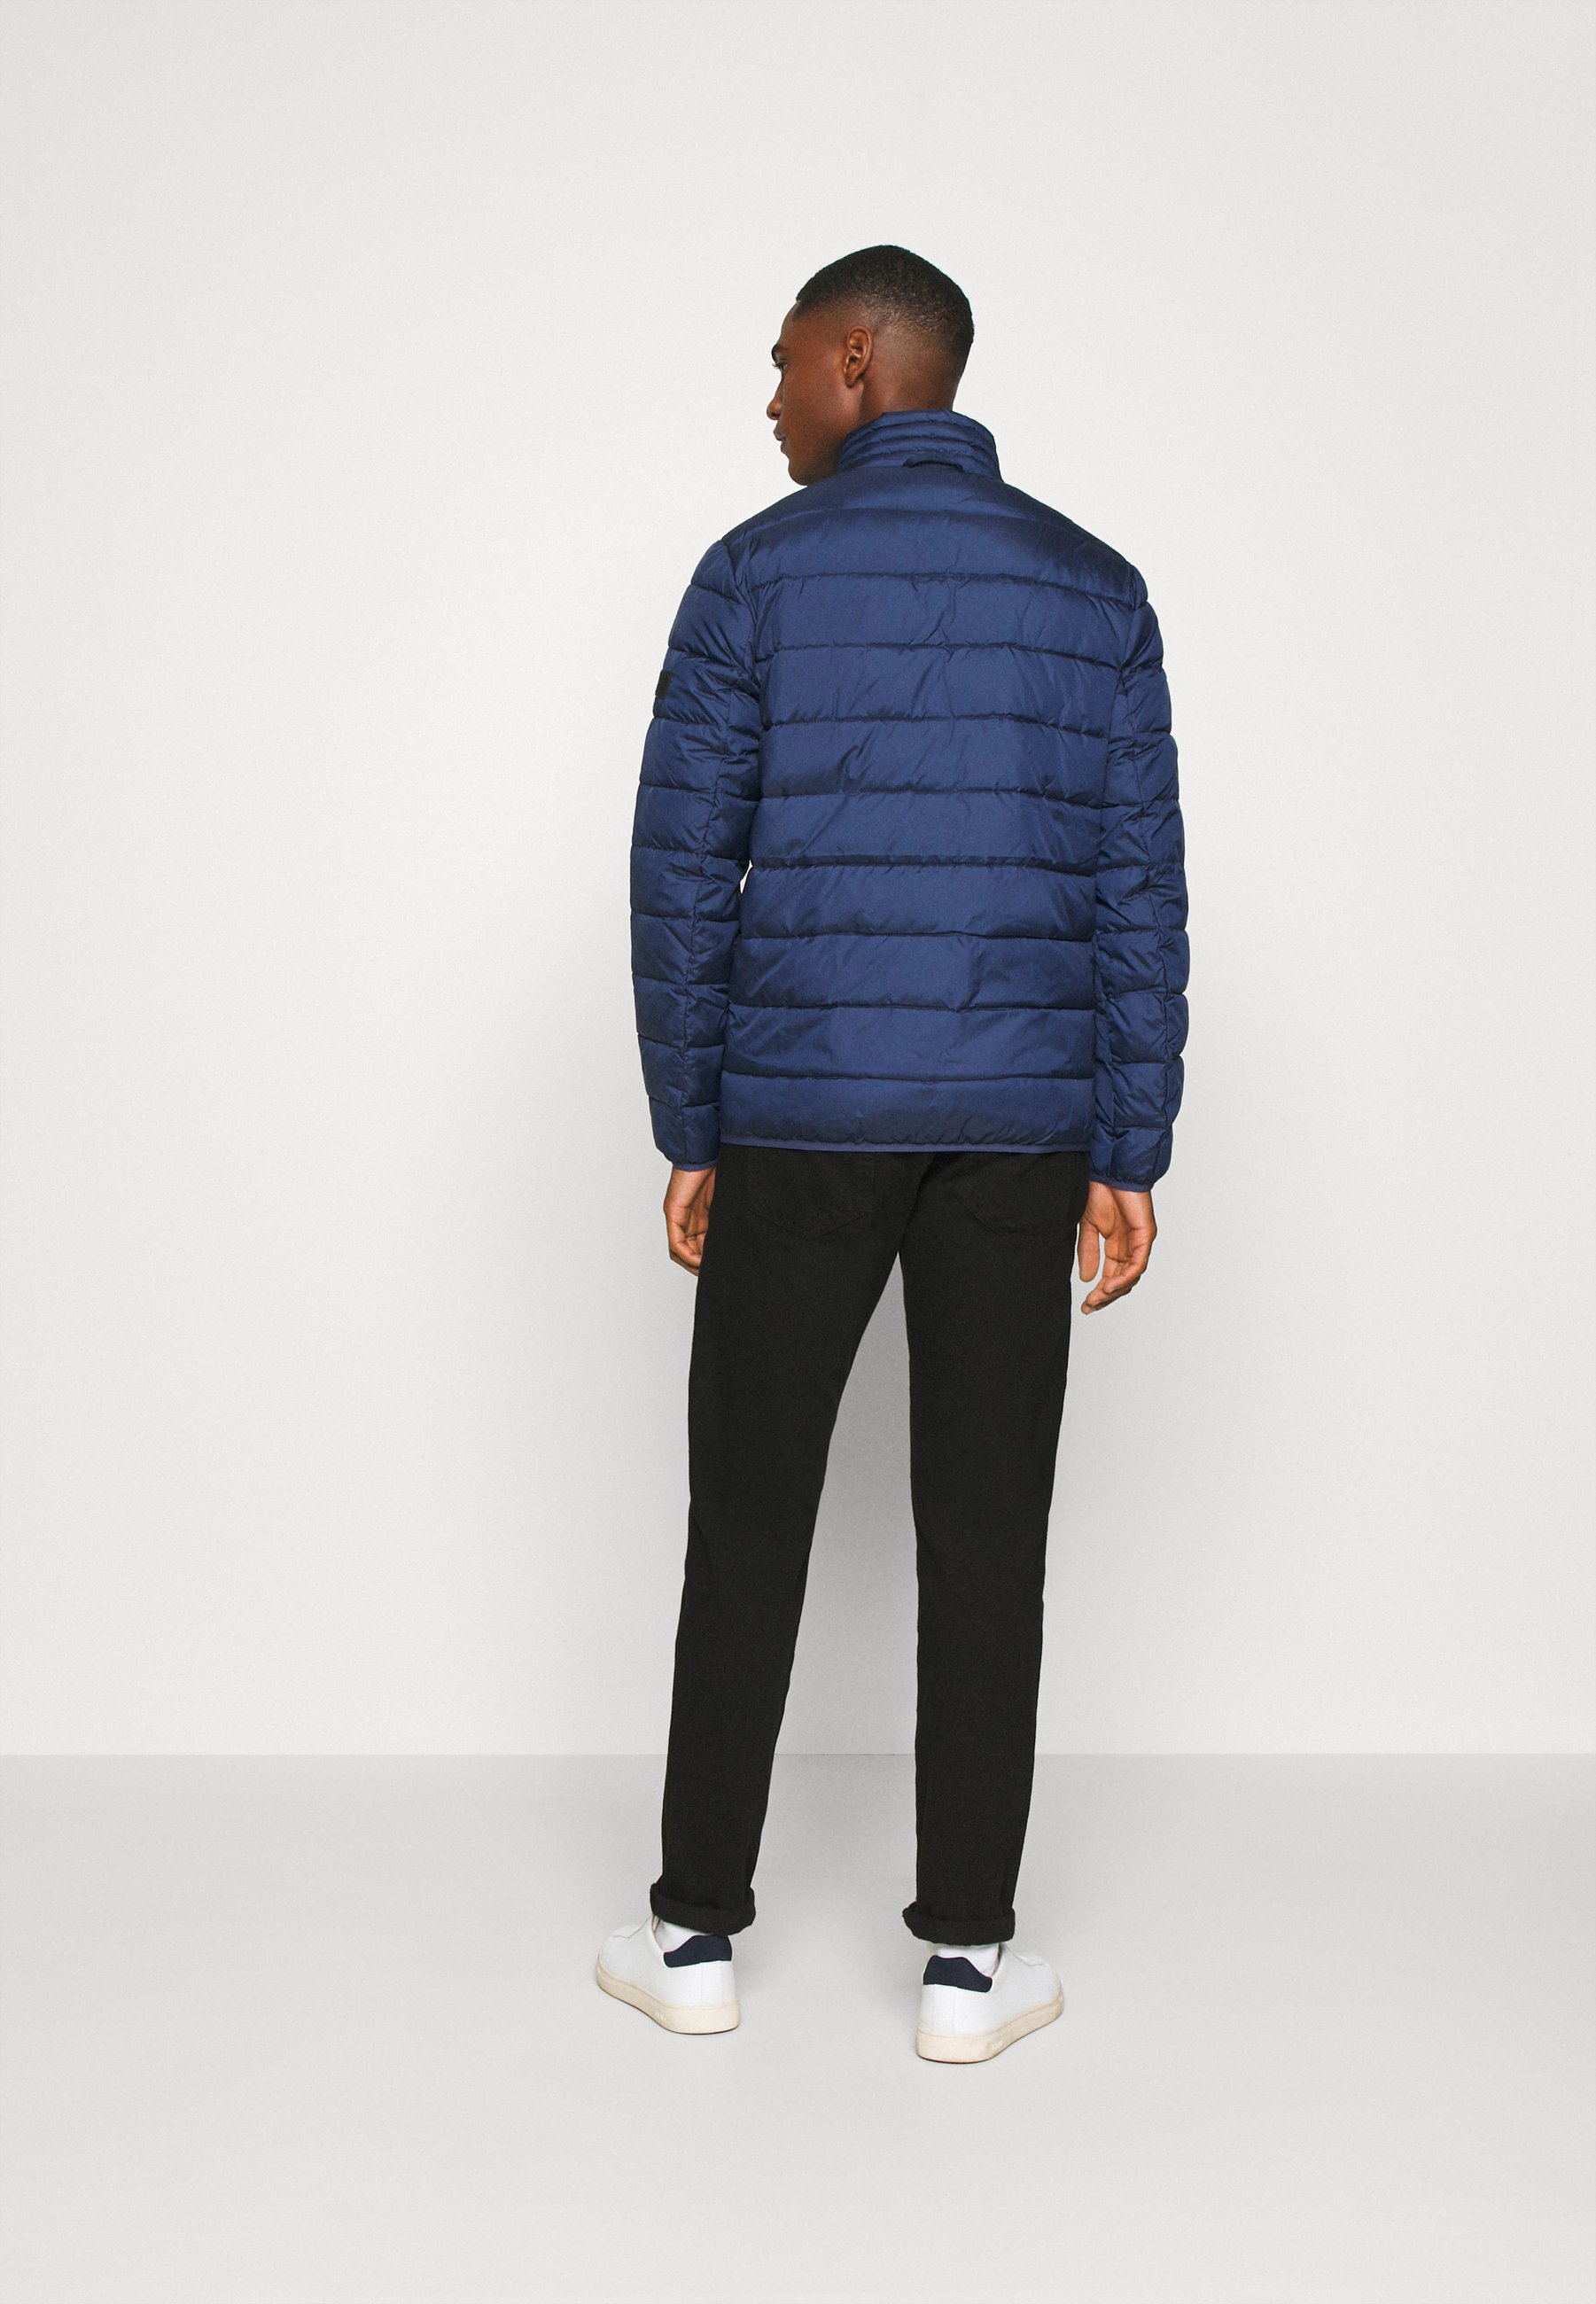 Tom Tailor Denim Lightweight Jacket - Übergangsjacke Cosmos Blue